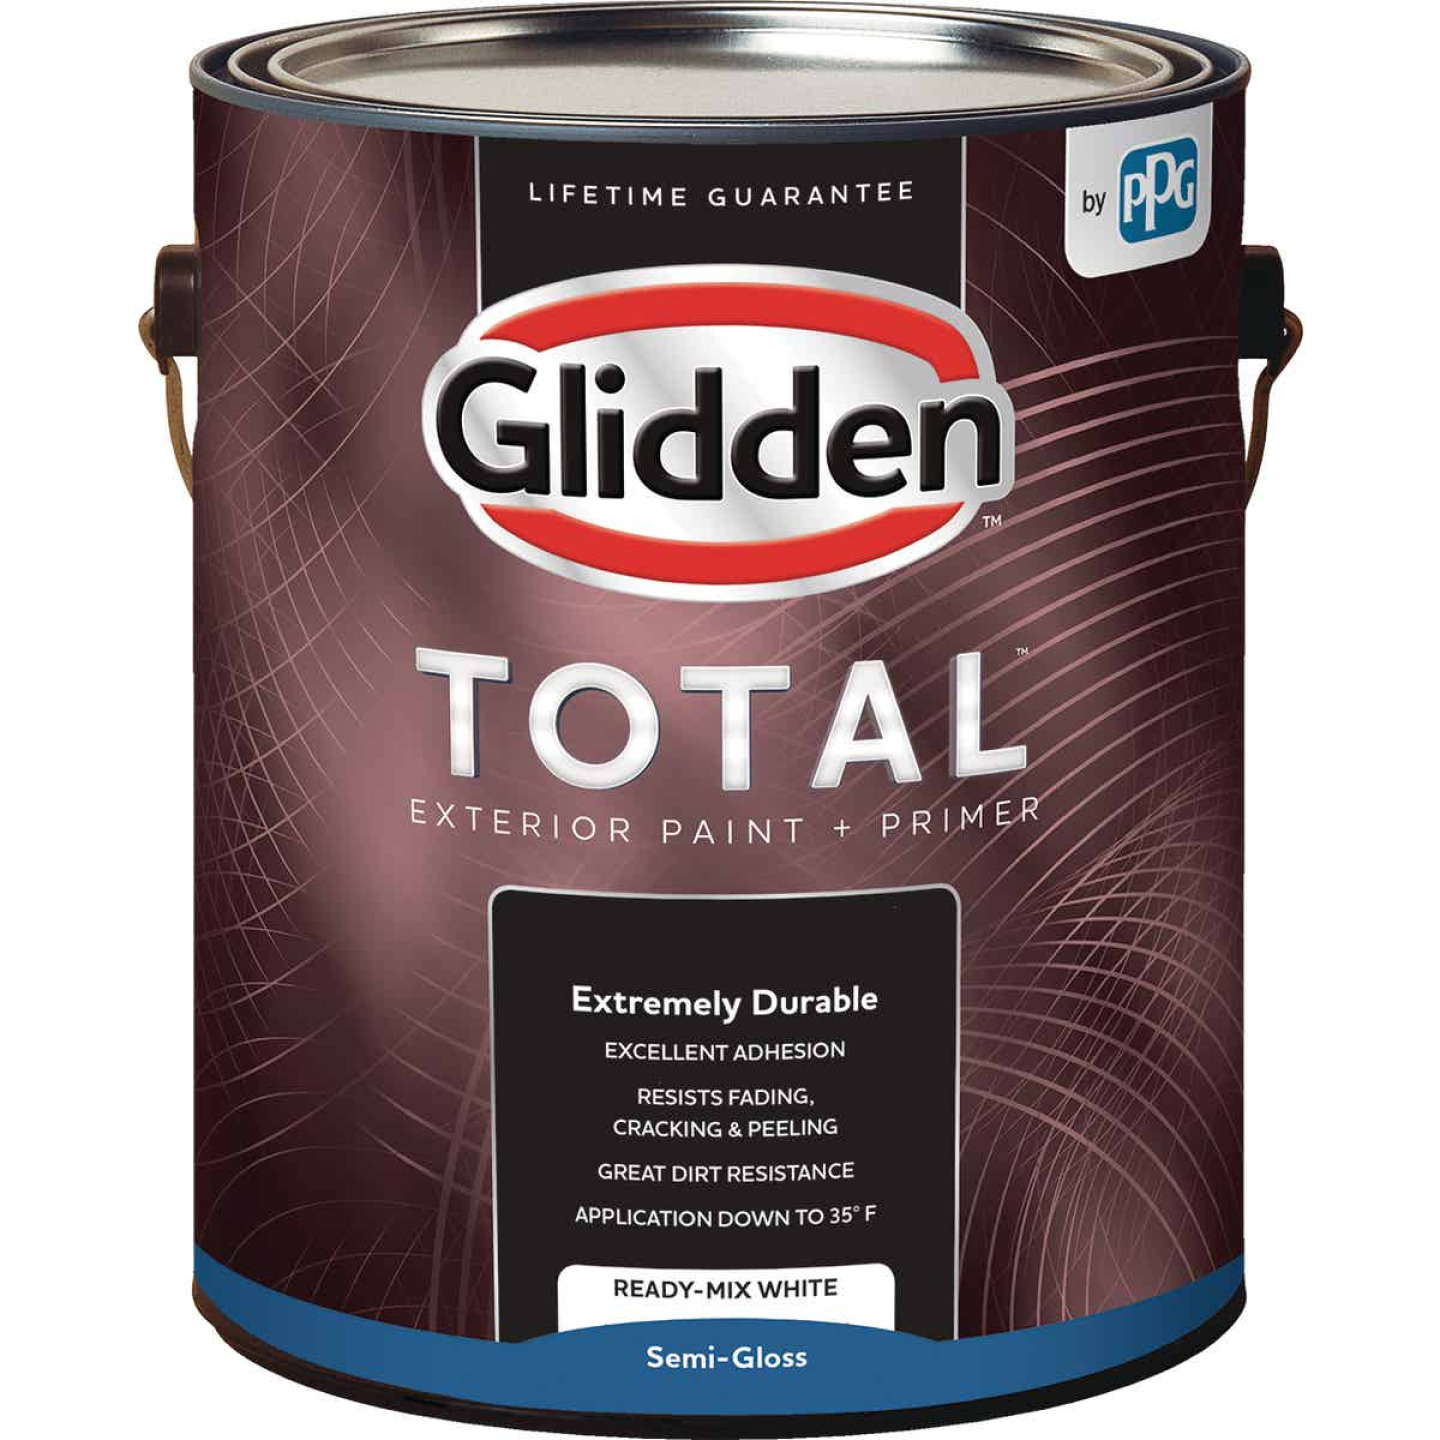 Glidden Total Exterior Paint + Primer Semi-Gloss Ready Mix White 1 Gallon Image 1